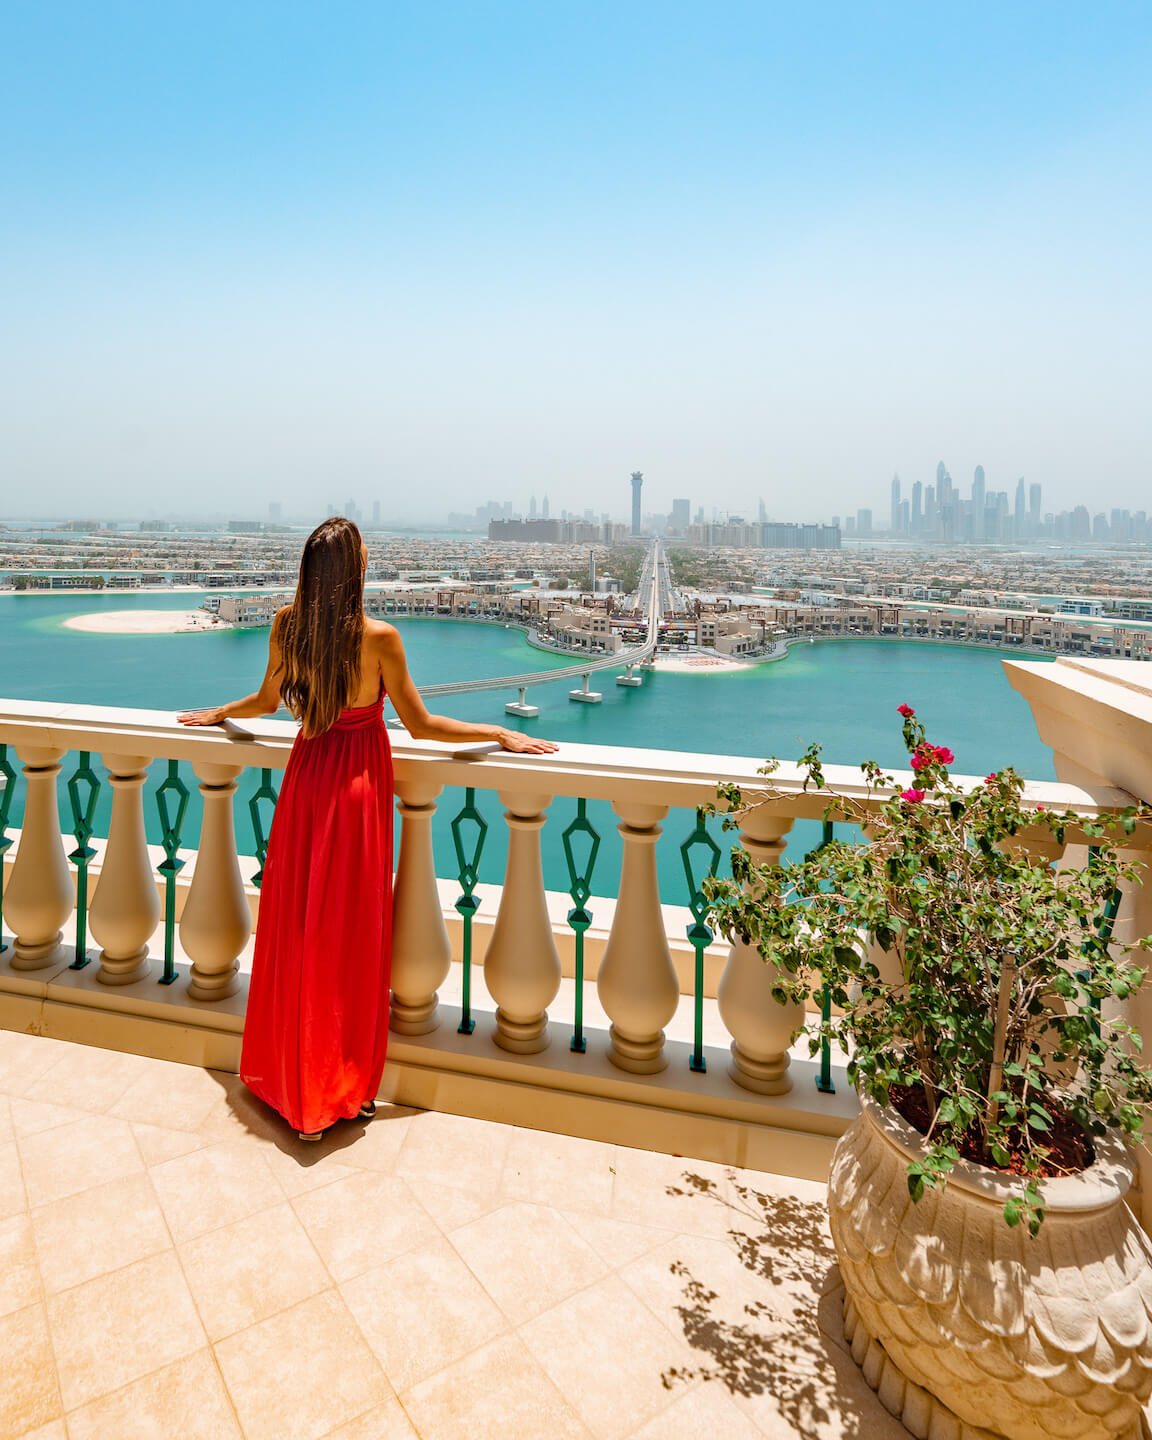 View from the Balcony of the Royal Bridge Suite at the Atlantis The Palm Dubai